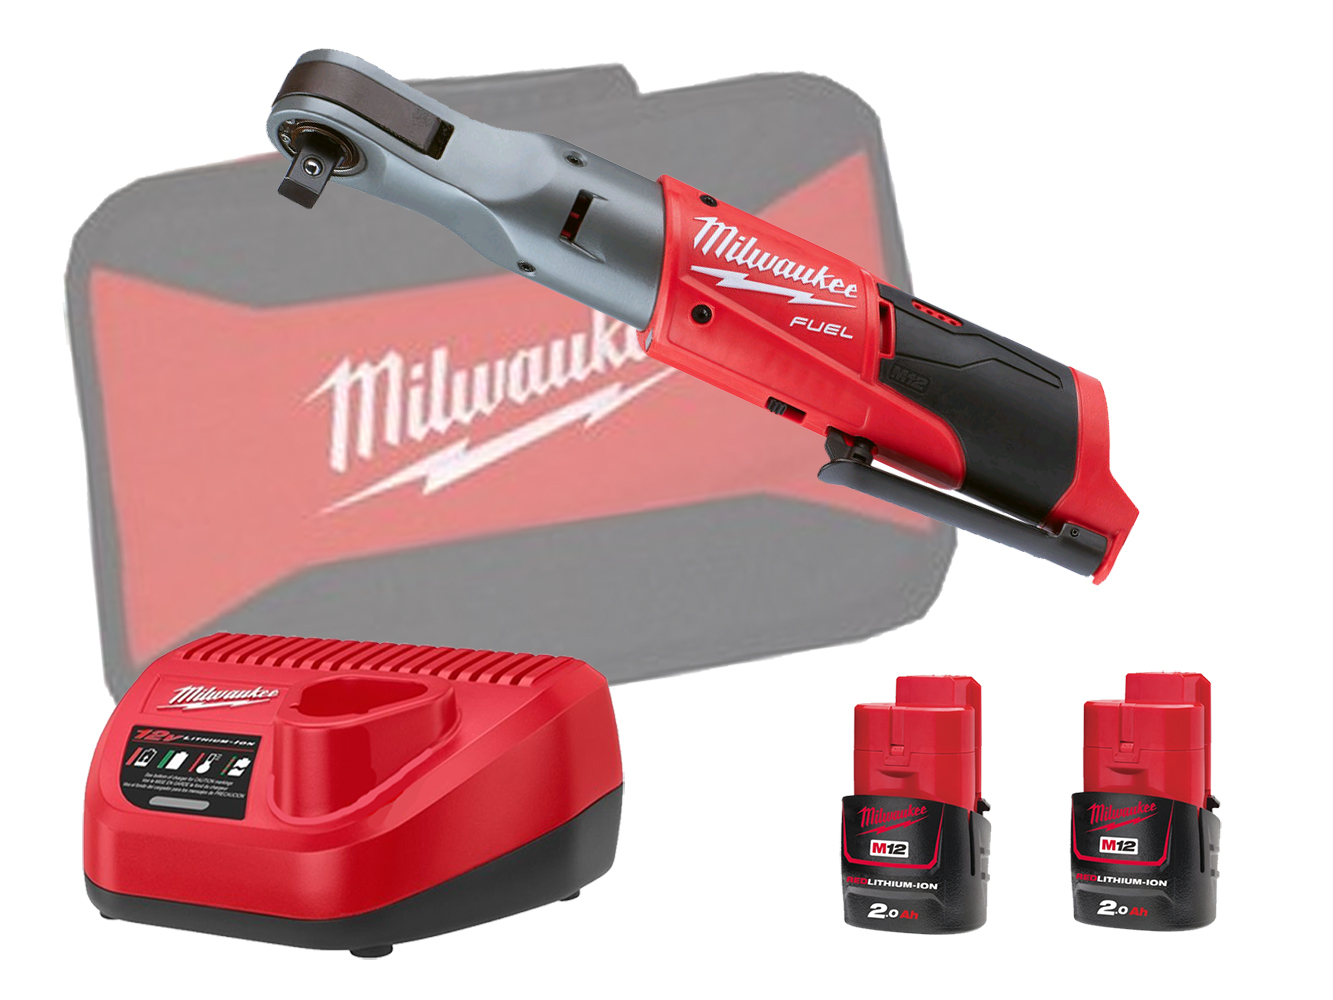 MILWAUKEE 12V FUEL BRUSHLESS 1/2